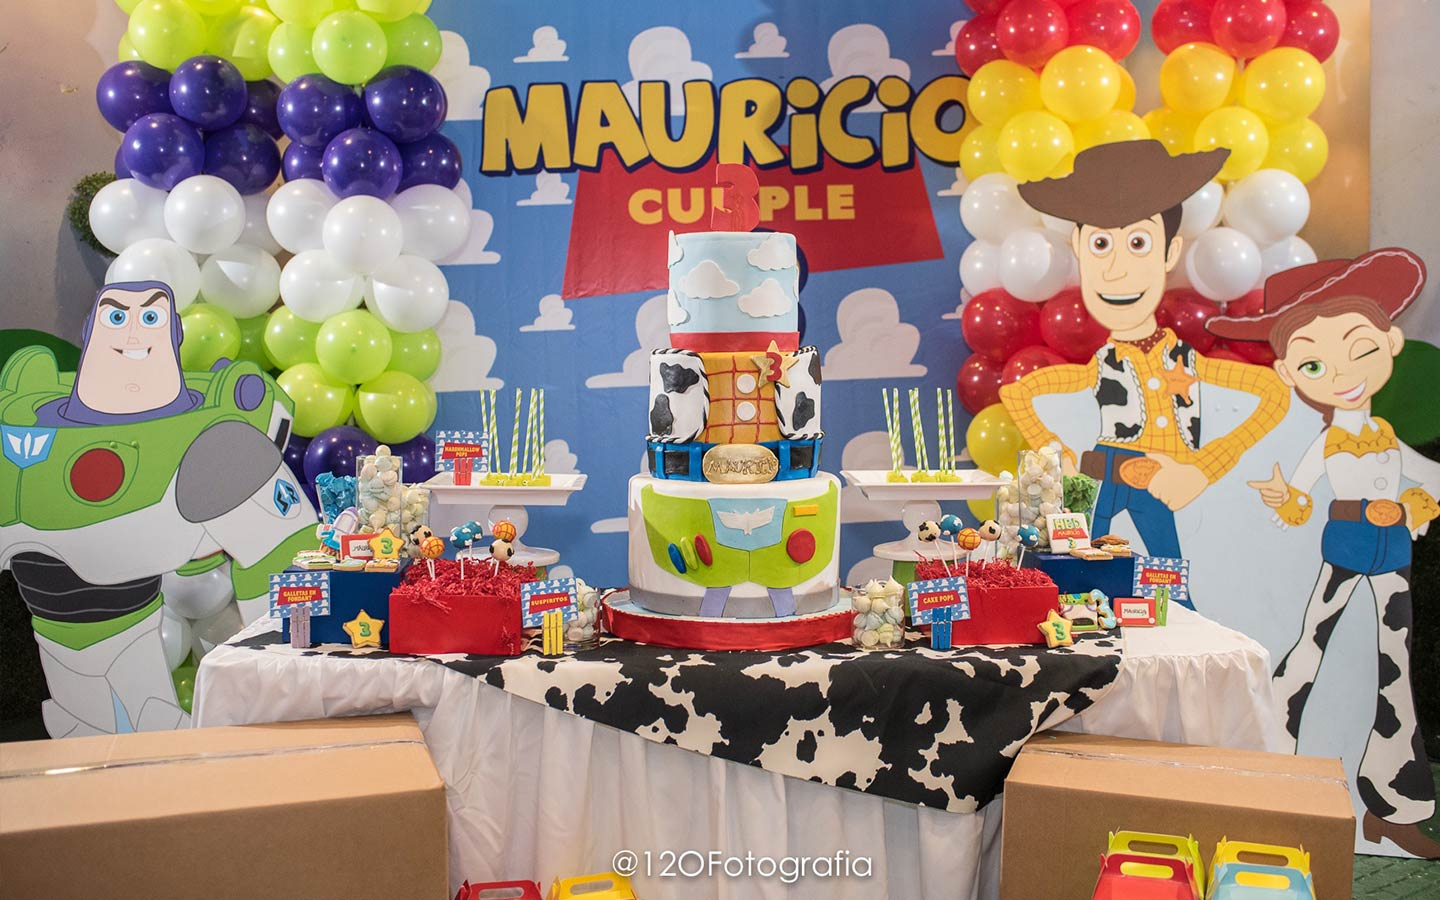 Mauricios turns 3 Toy Story